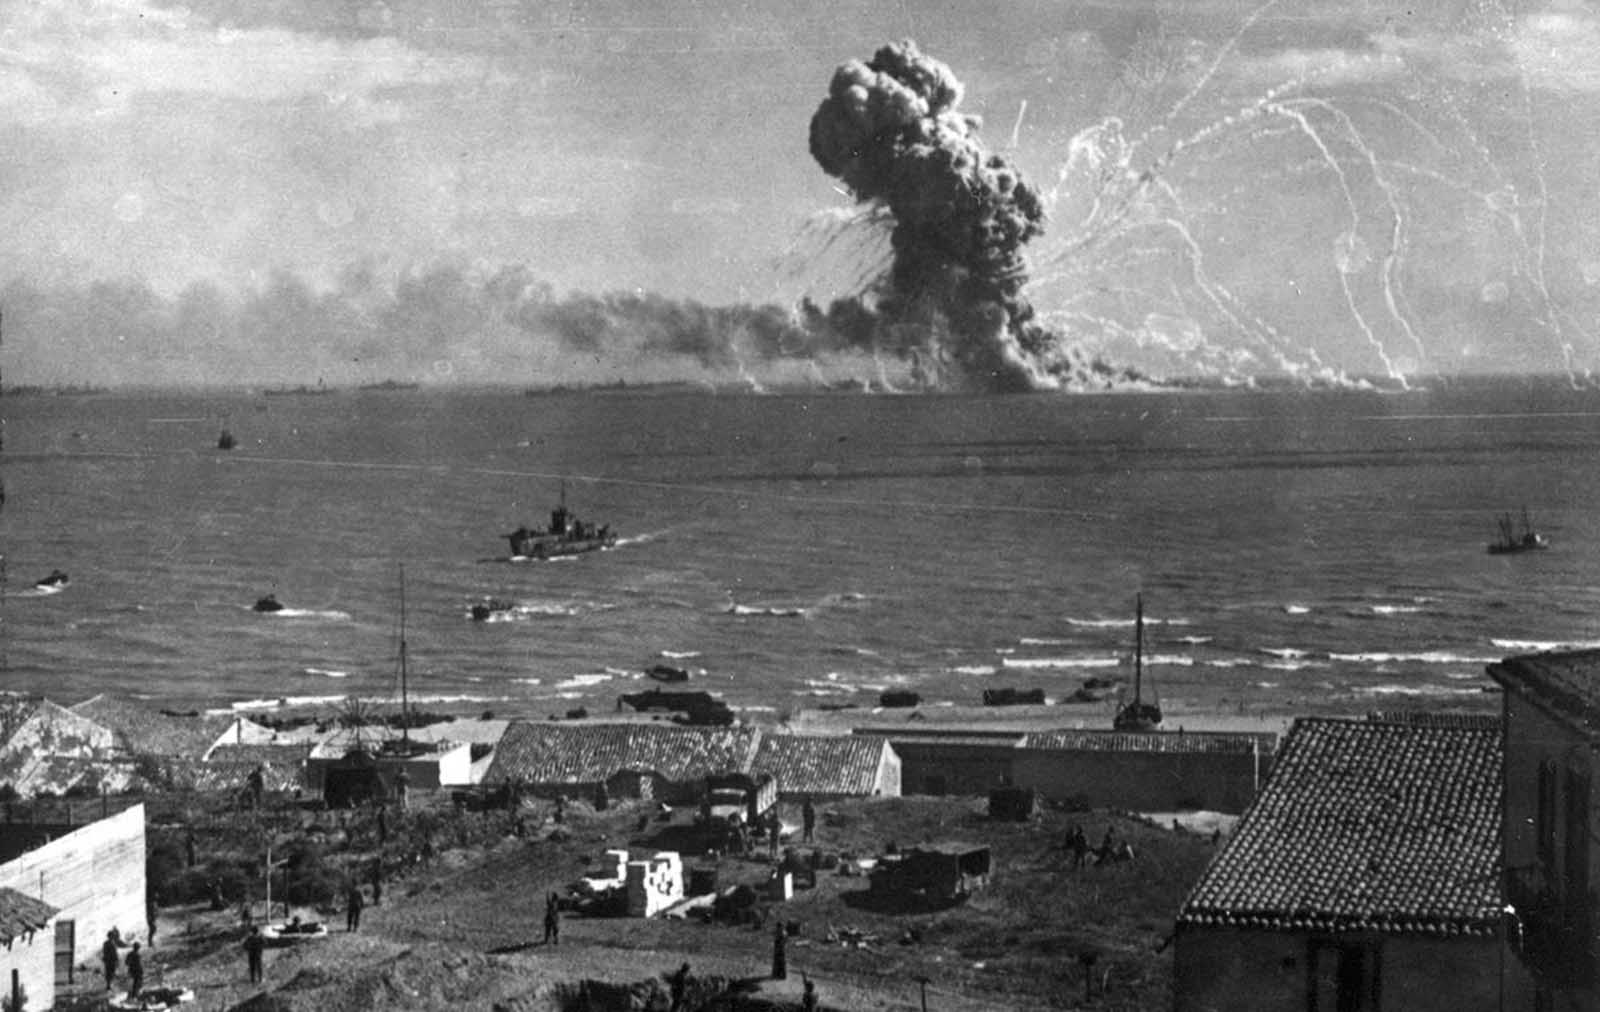 During the invasion of Sicily by Allied forces, an American cargo ship, loaded with ammunition, explodes after being hit by a bomb from a German plane off Gela, on the southern coast of Sicily, on July 31, 1943.